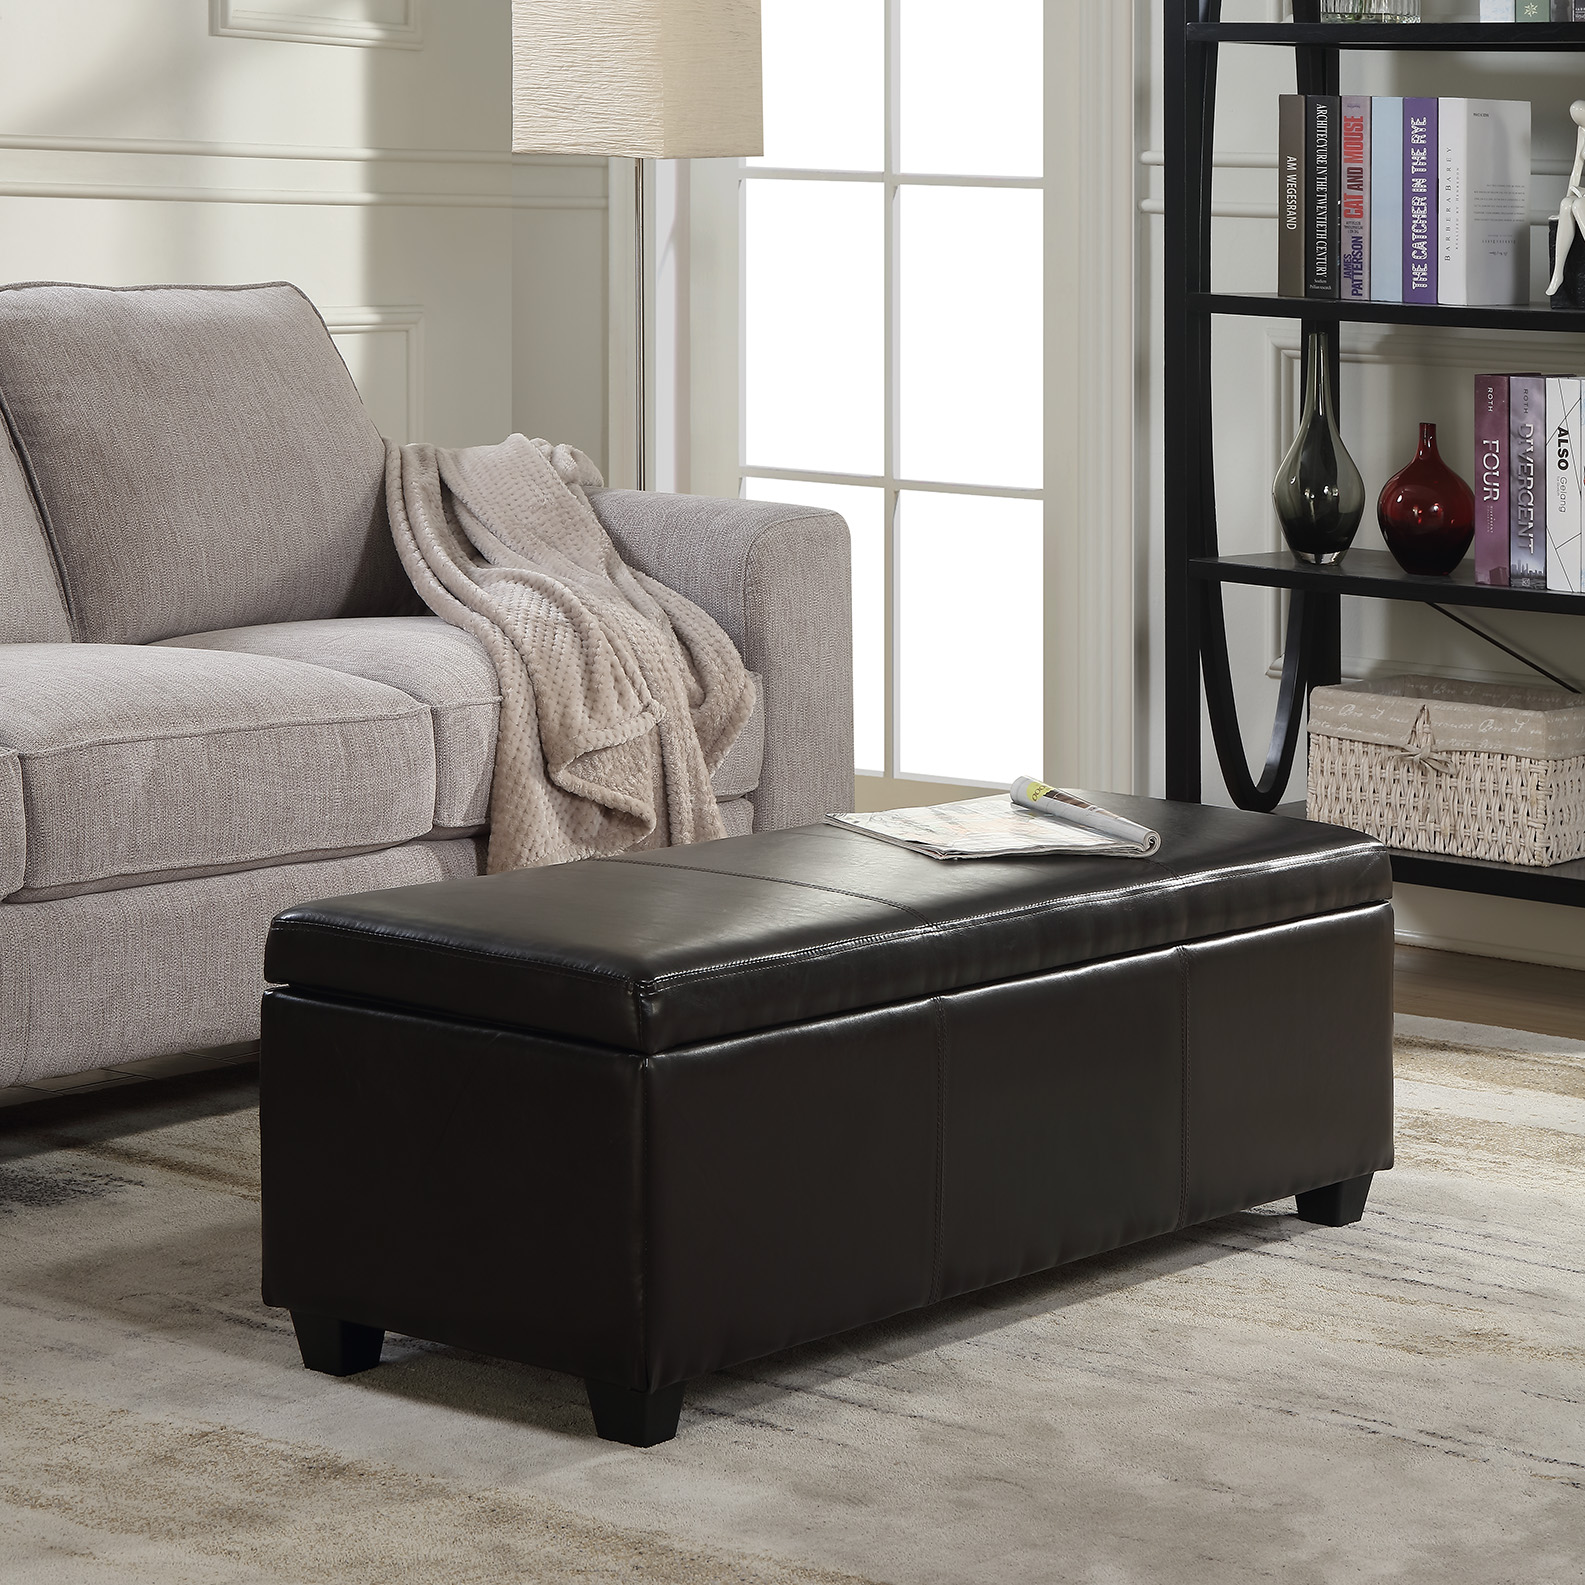 Espresso Faux Leather Storage Ottoman Large Bench Foot Rest Seat Room Decor 48 Ebay